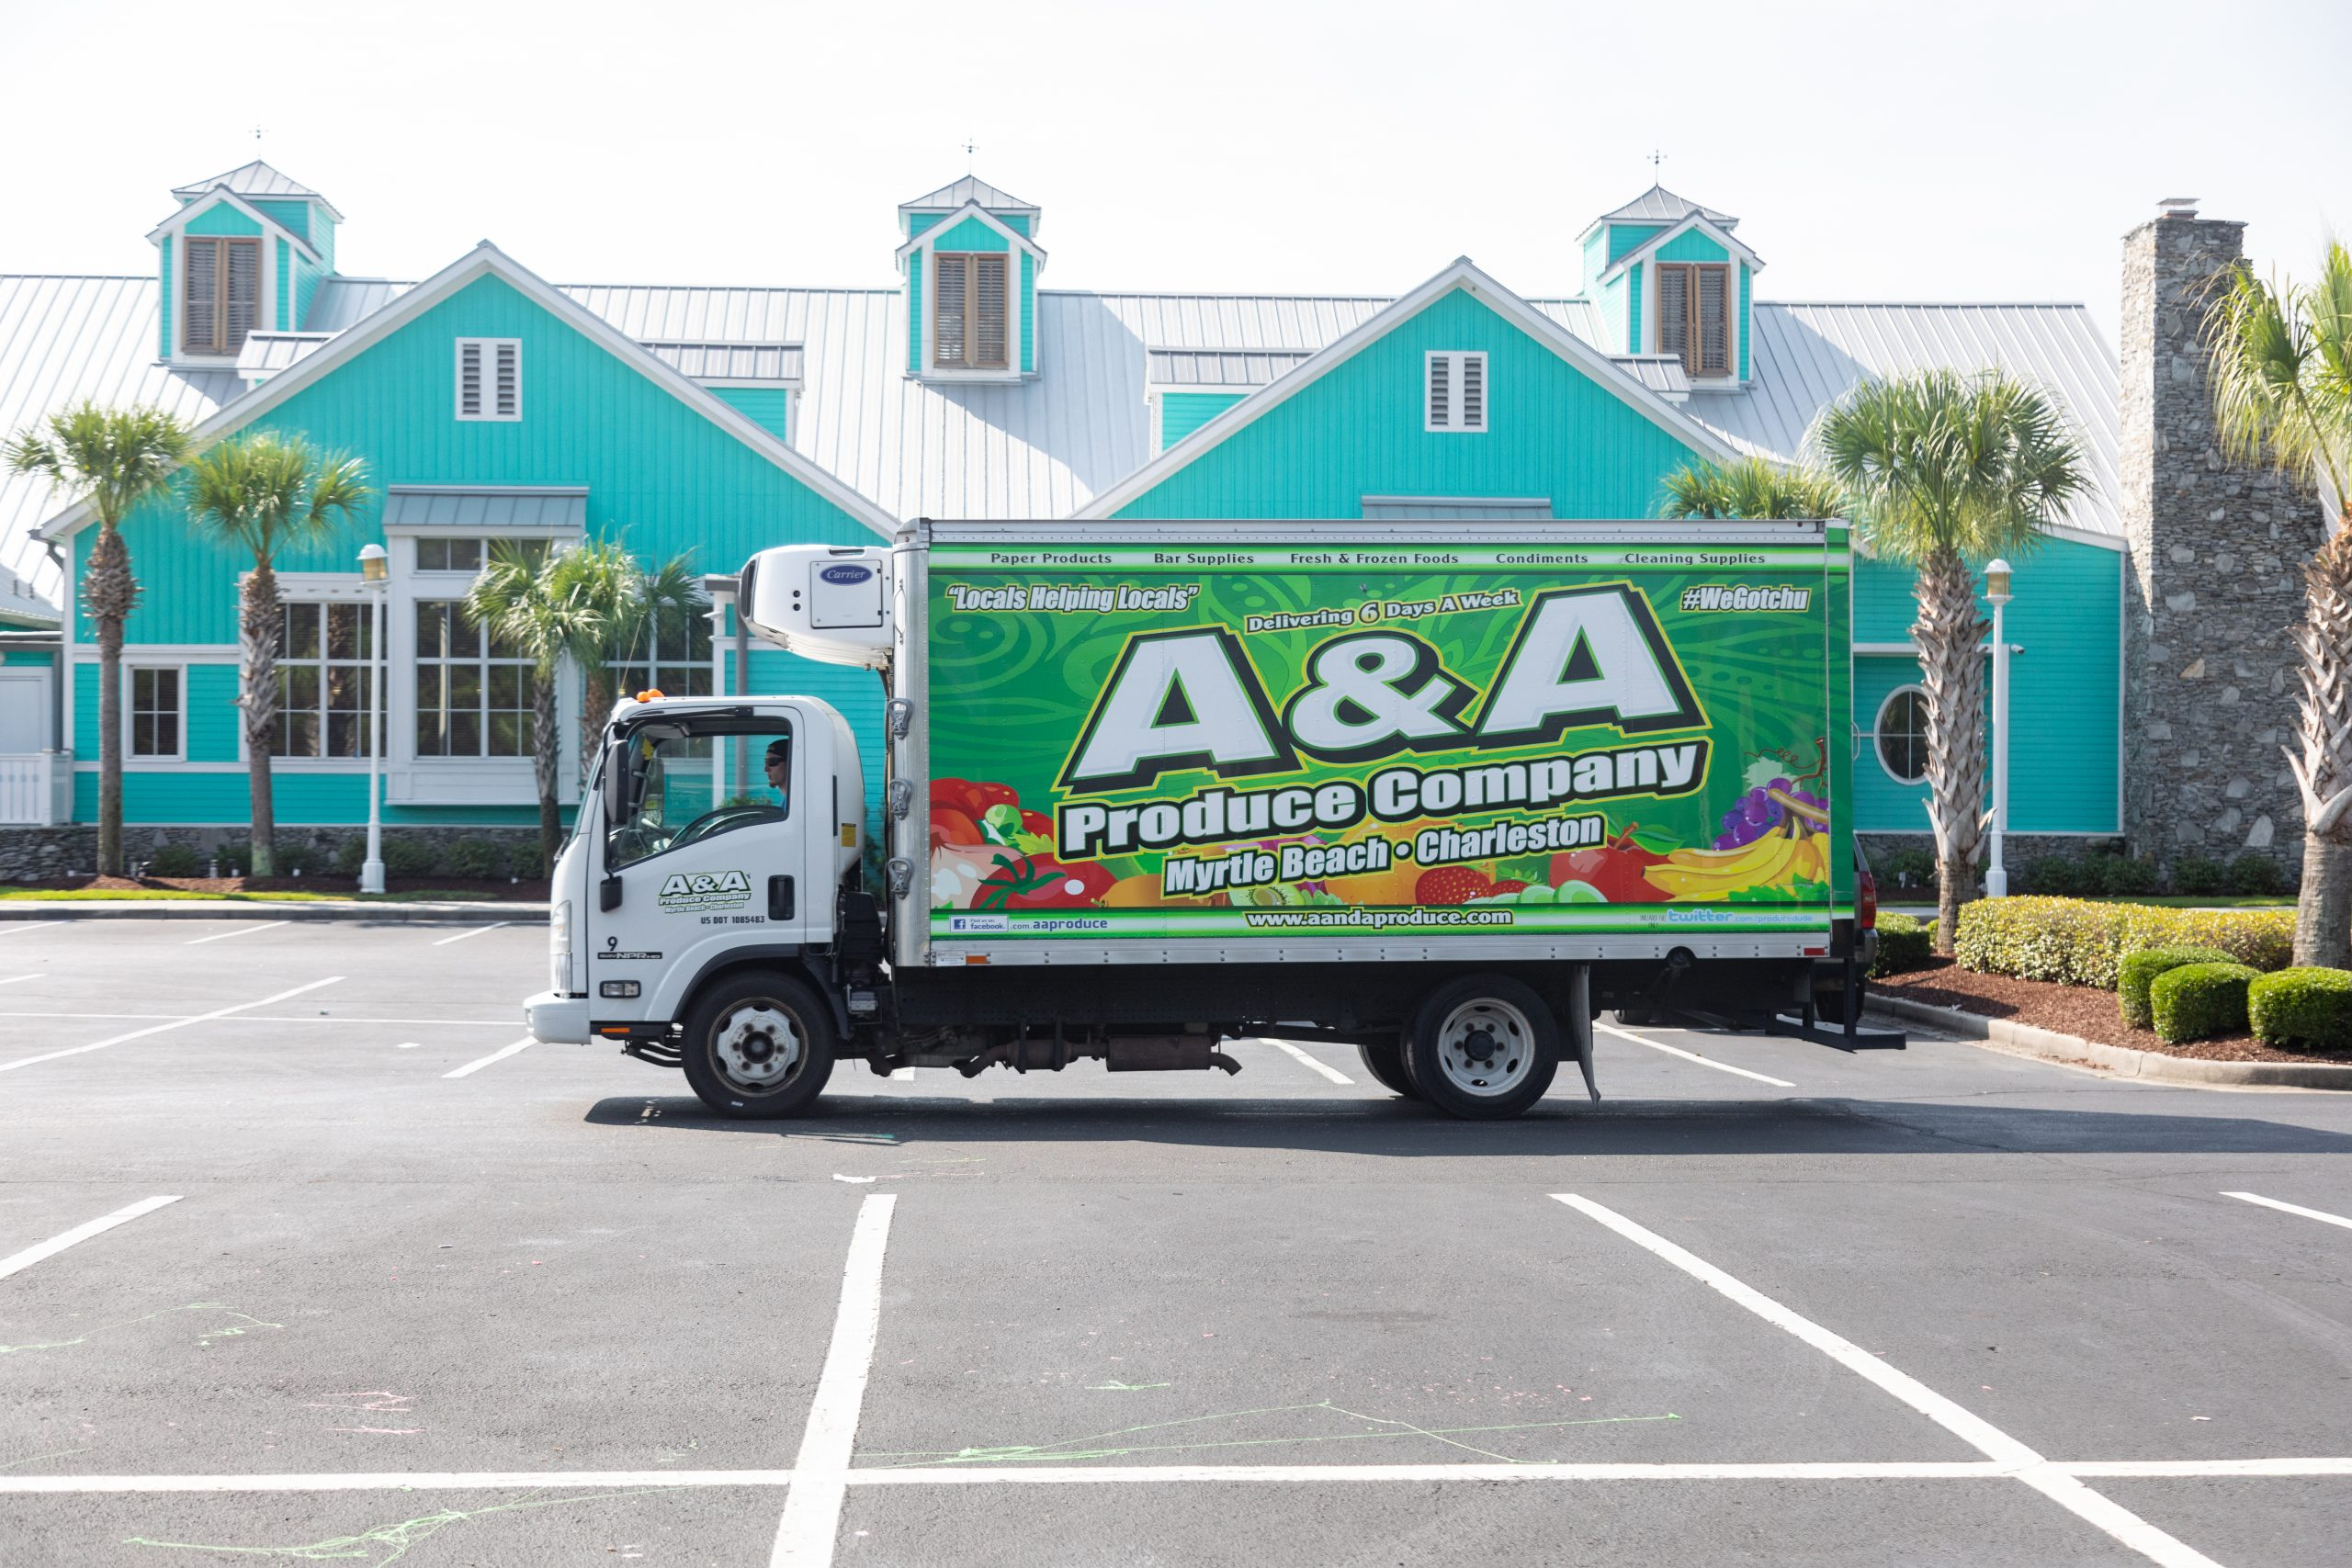 A&A delivers charleston